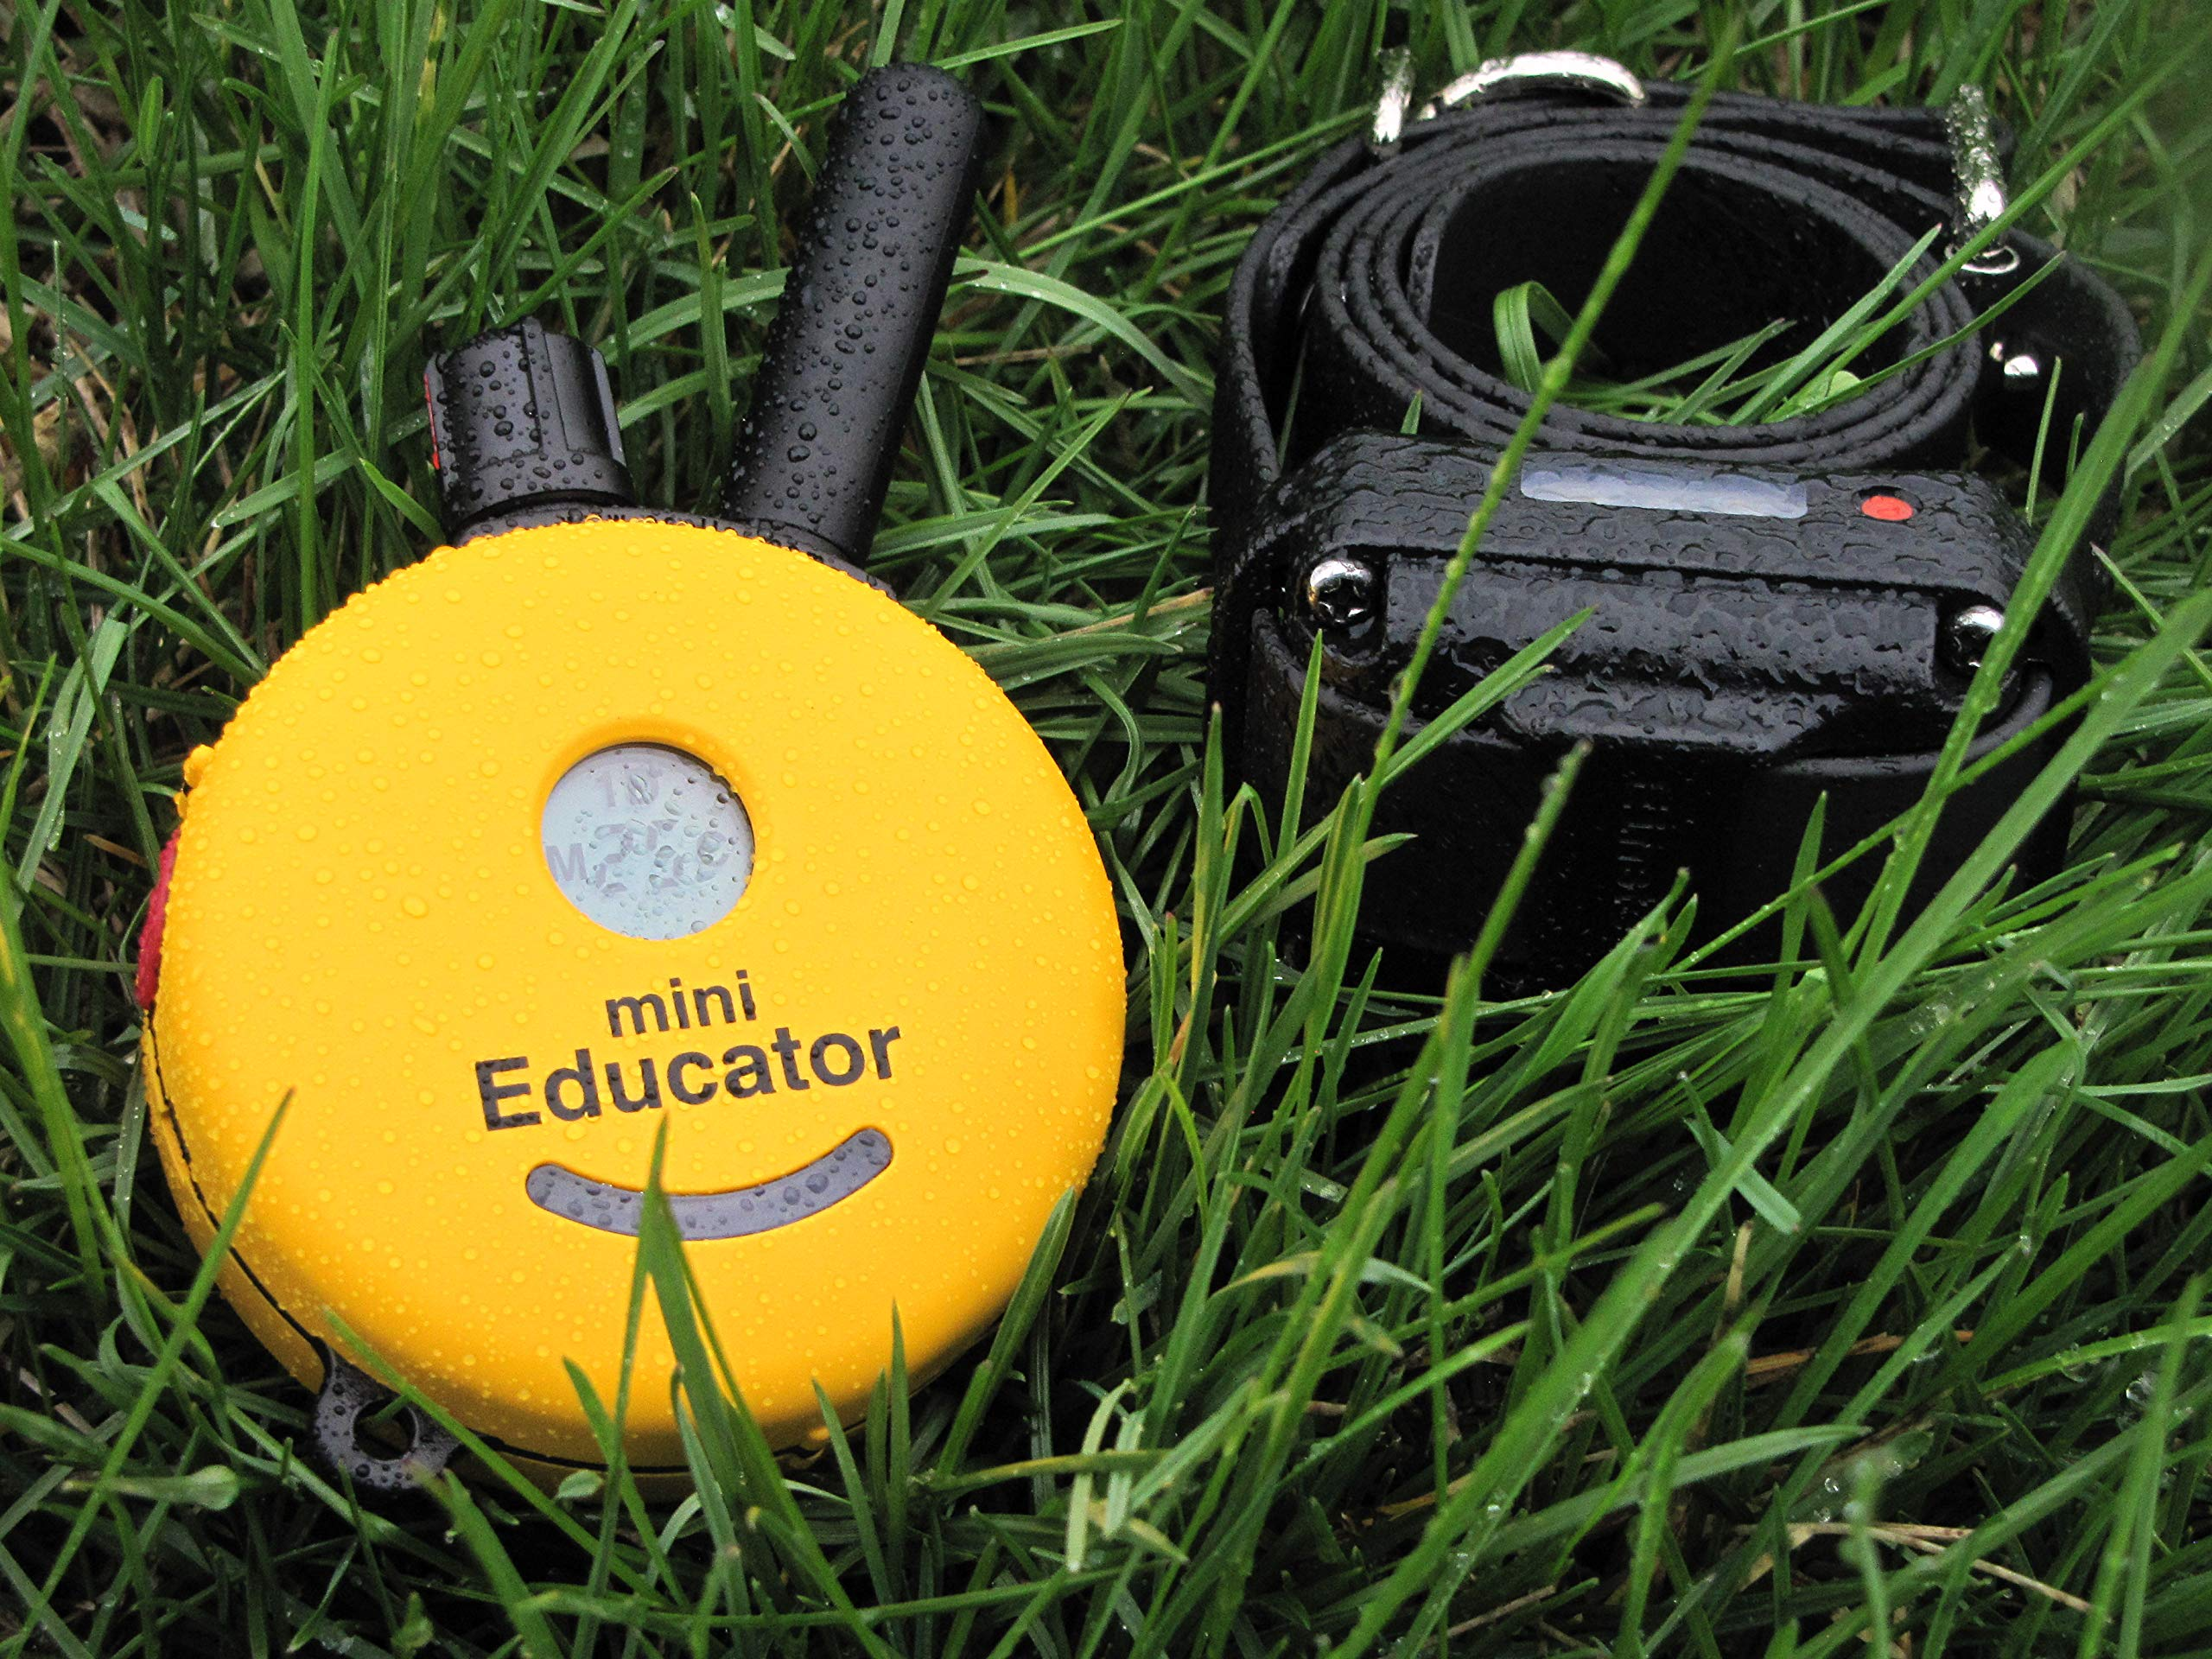 Best Dog Training e Collar - Educator Einstein Remote Trainer - Mini Educator 1/2 Mile Remote Trainer ET-300TS WaterProof - Vibration Tapping Sensation With eOutletDeals Postcard Magnet Calendar by E-Collar Dog Trainer (Image #5)